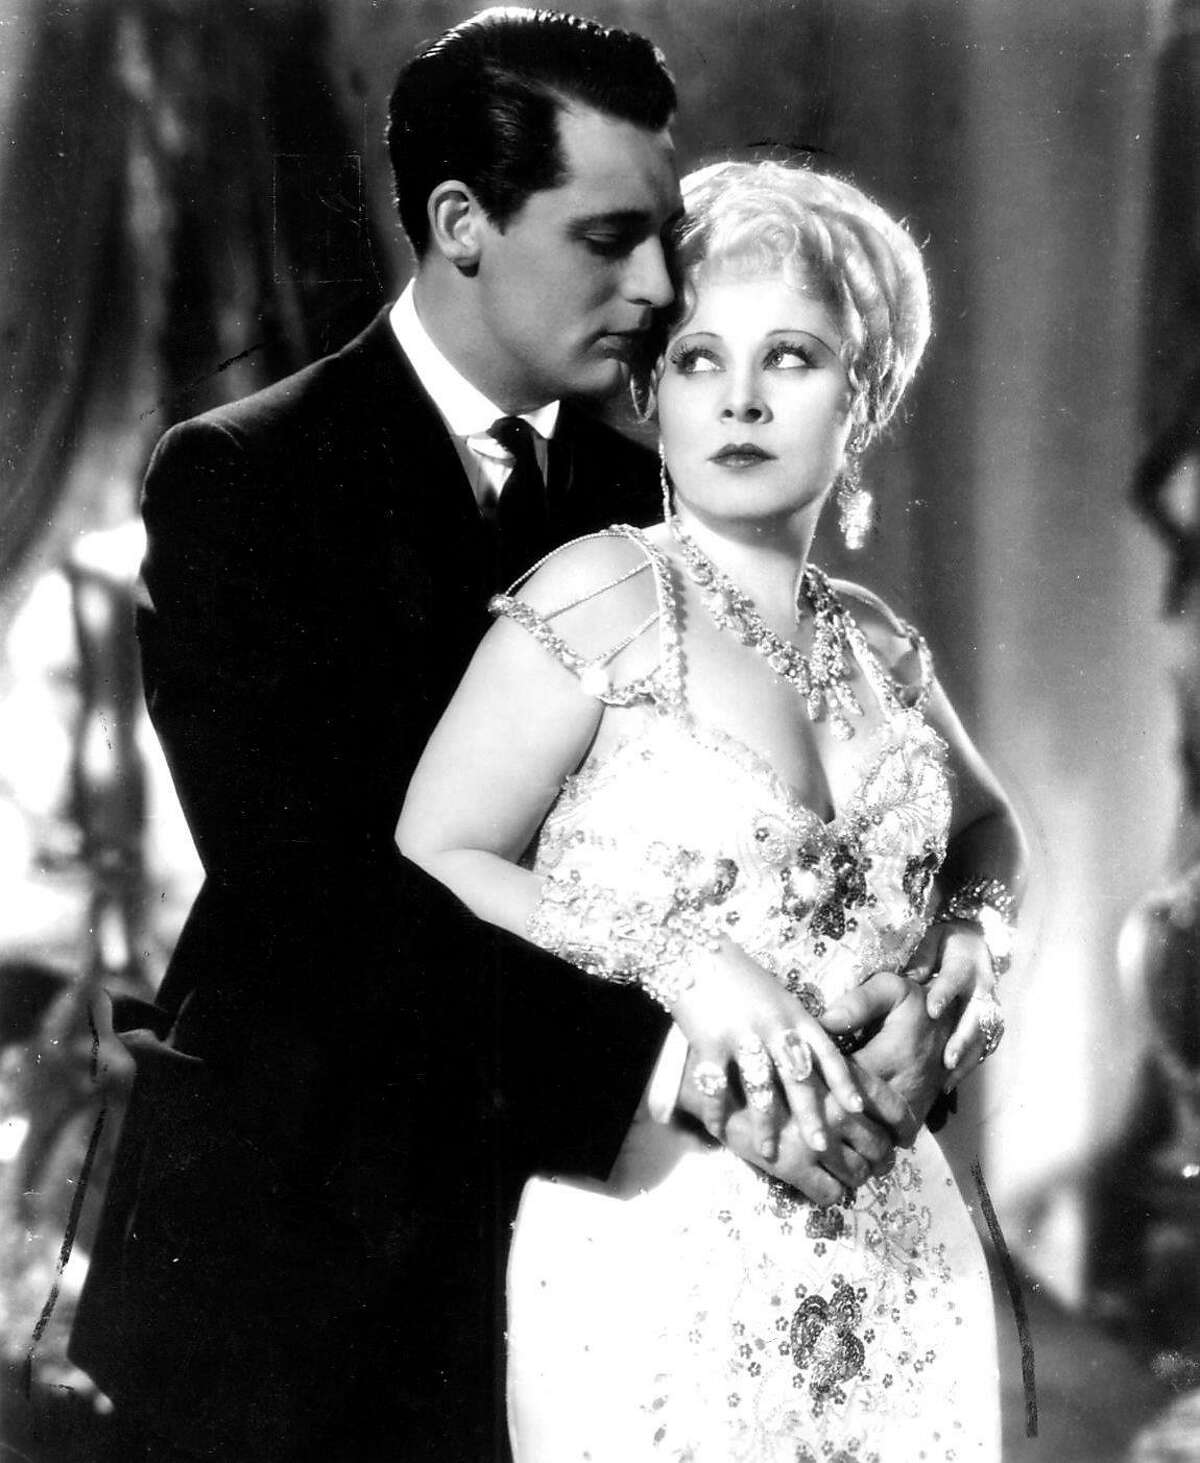 Cary Grant and Mae West in